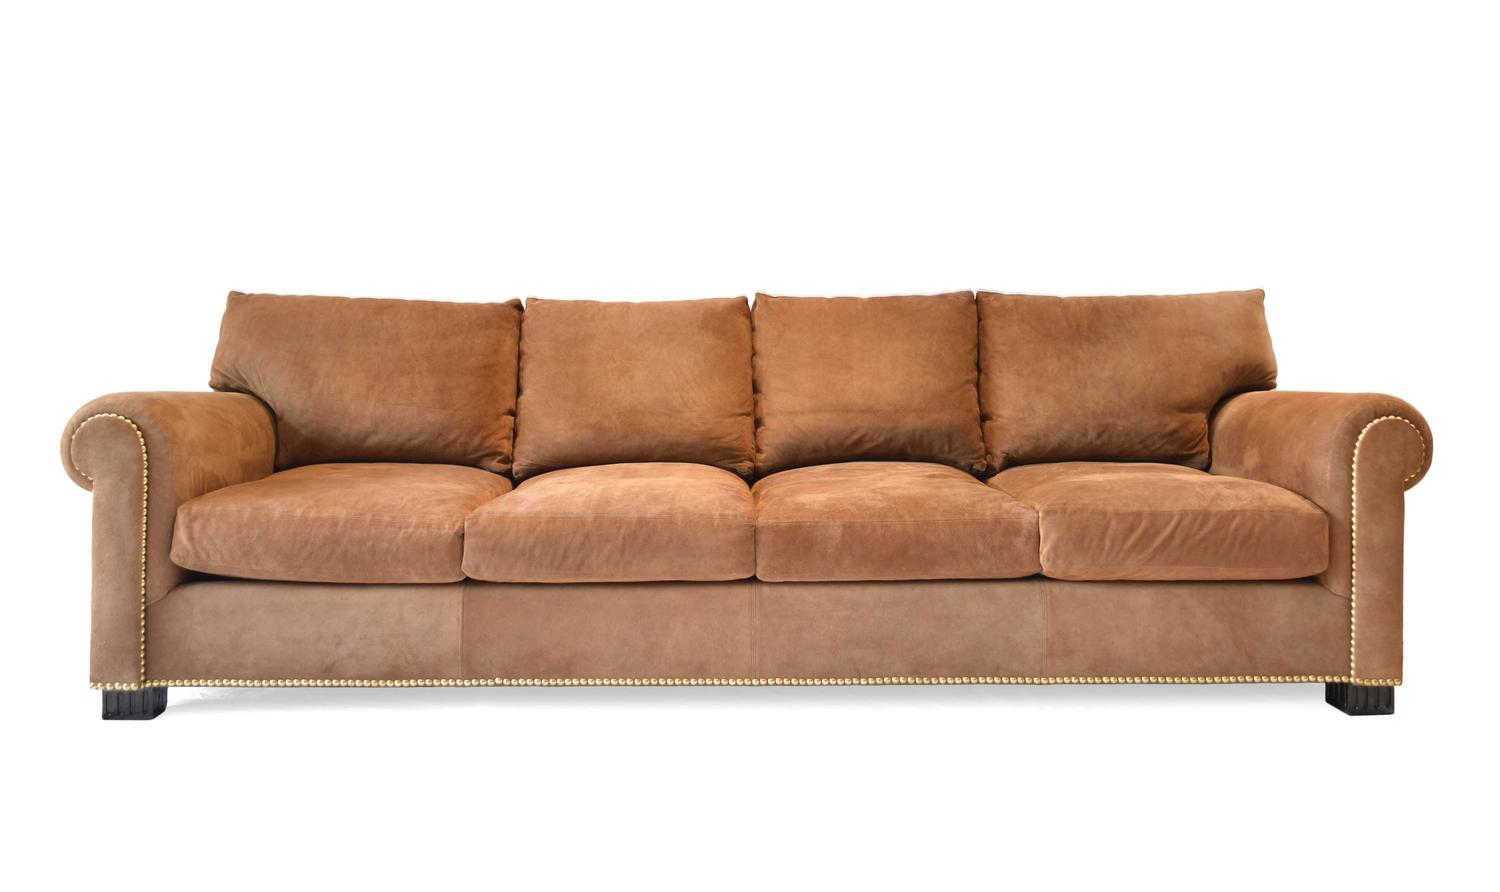 Suade couches 28 images contemporary orange suede 3 for Suede sectional